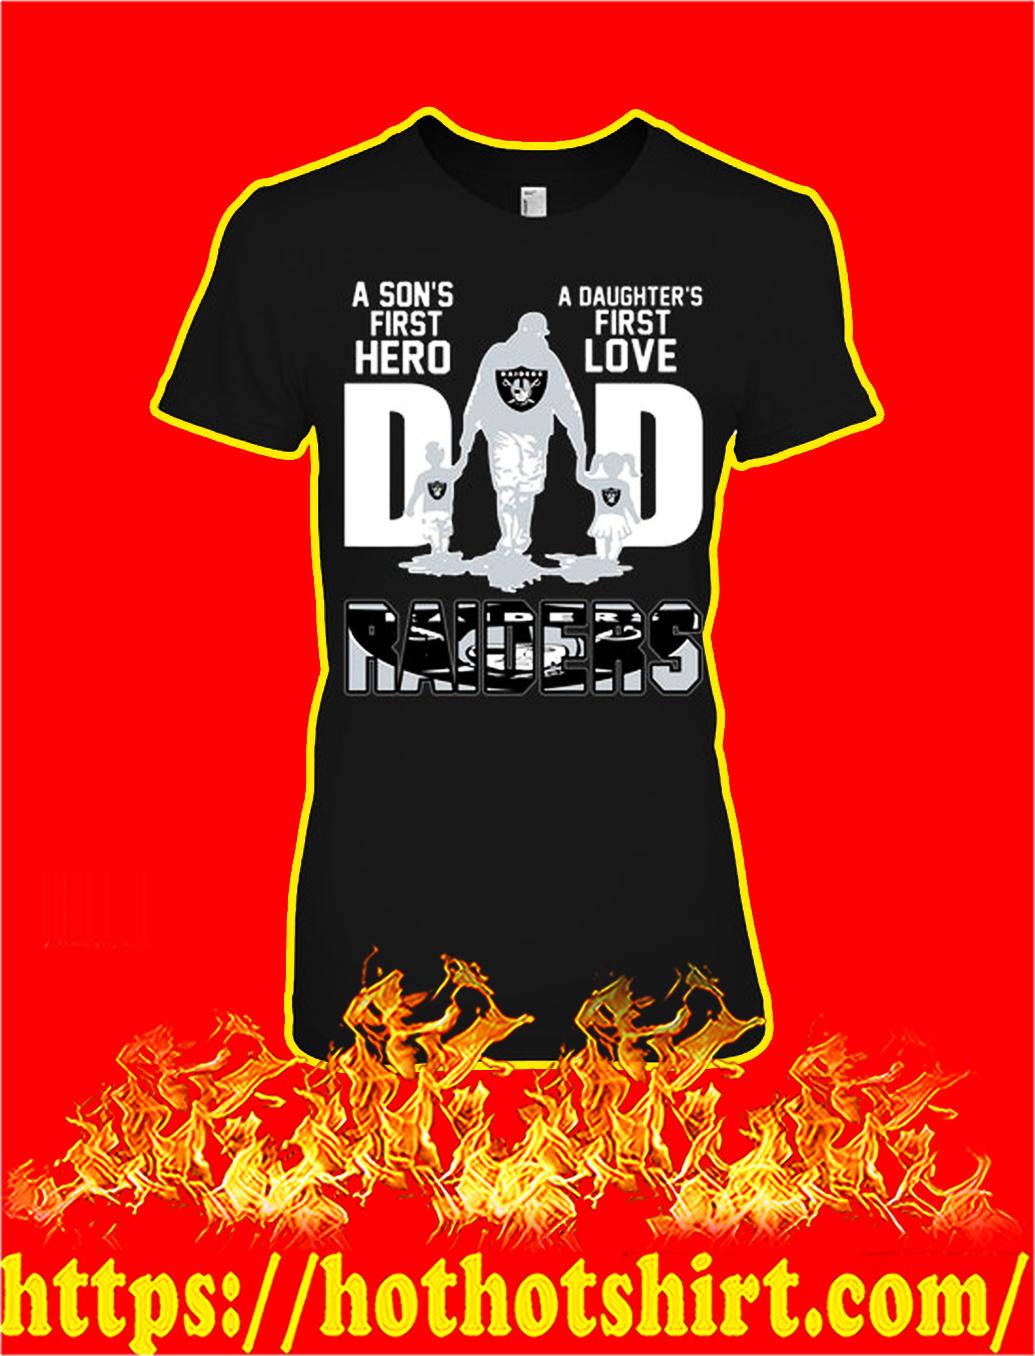 Raiders tide dad a son's first hero a daughter's first love lady shirt